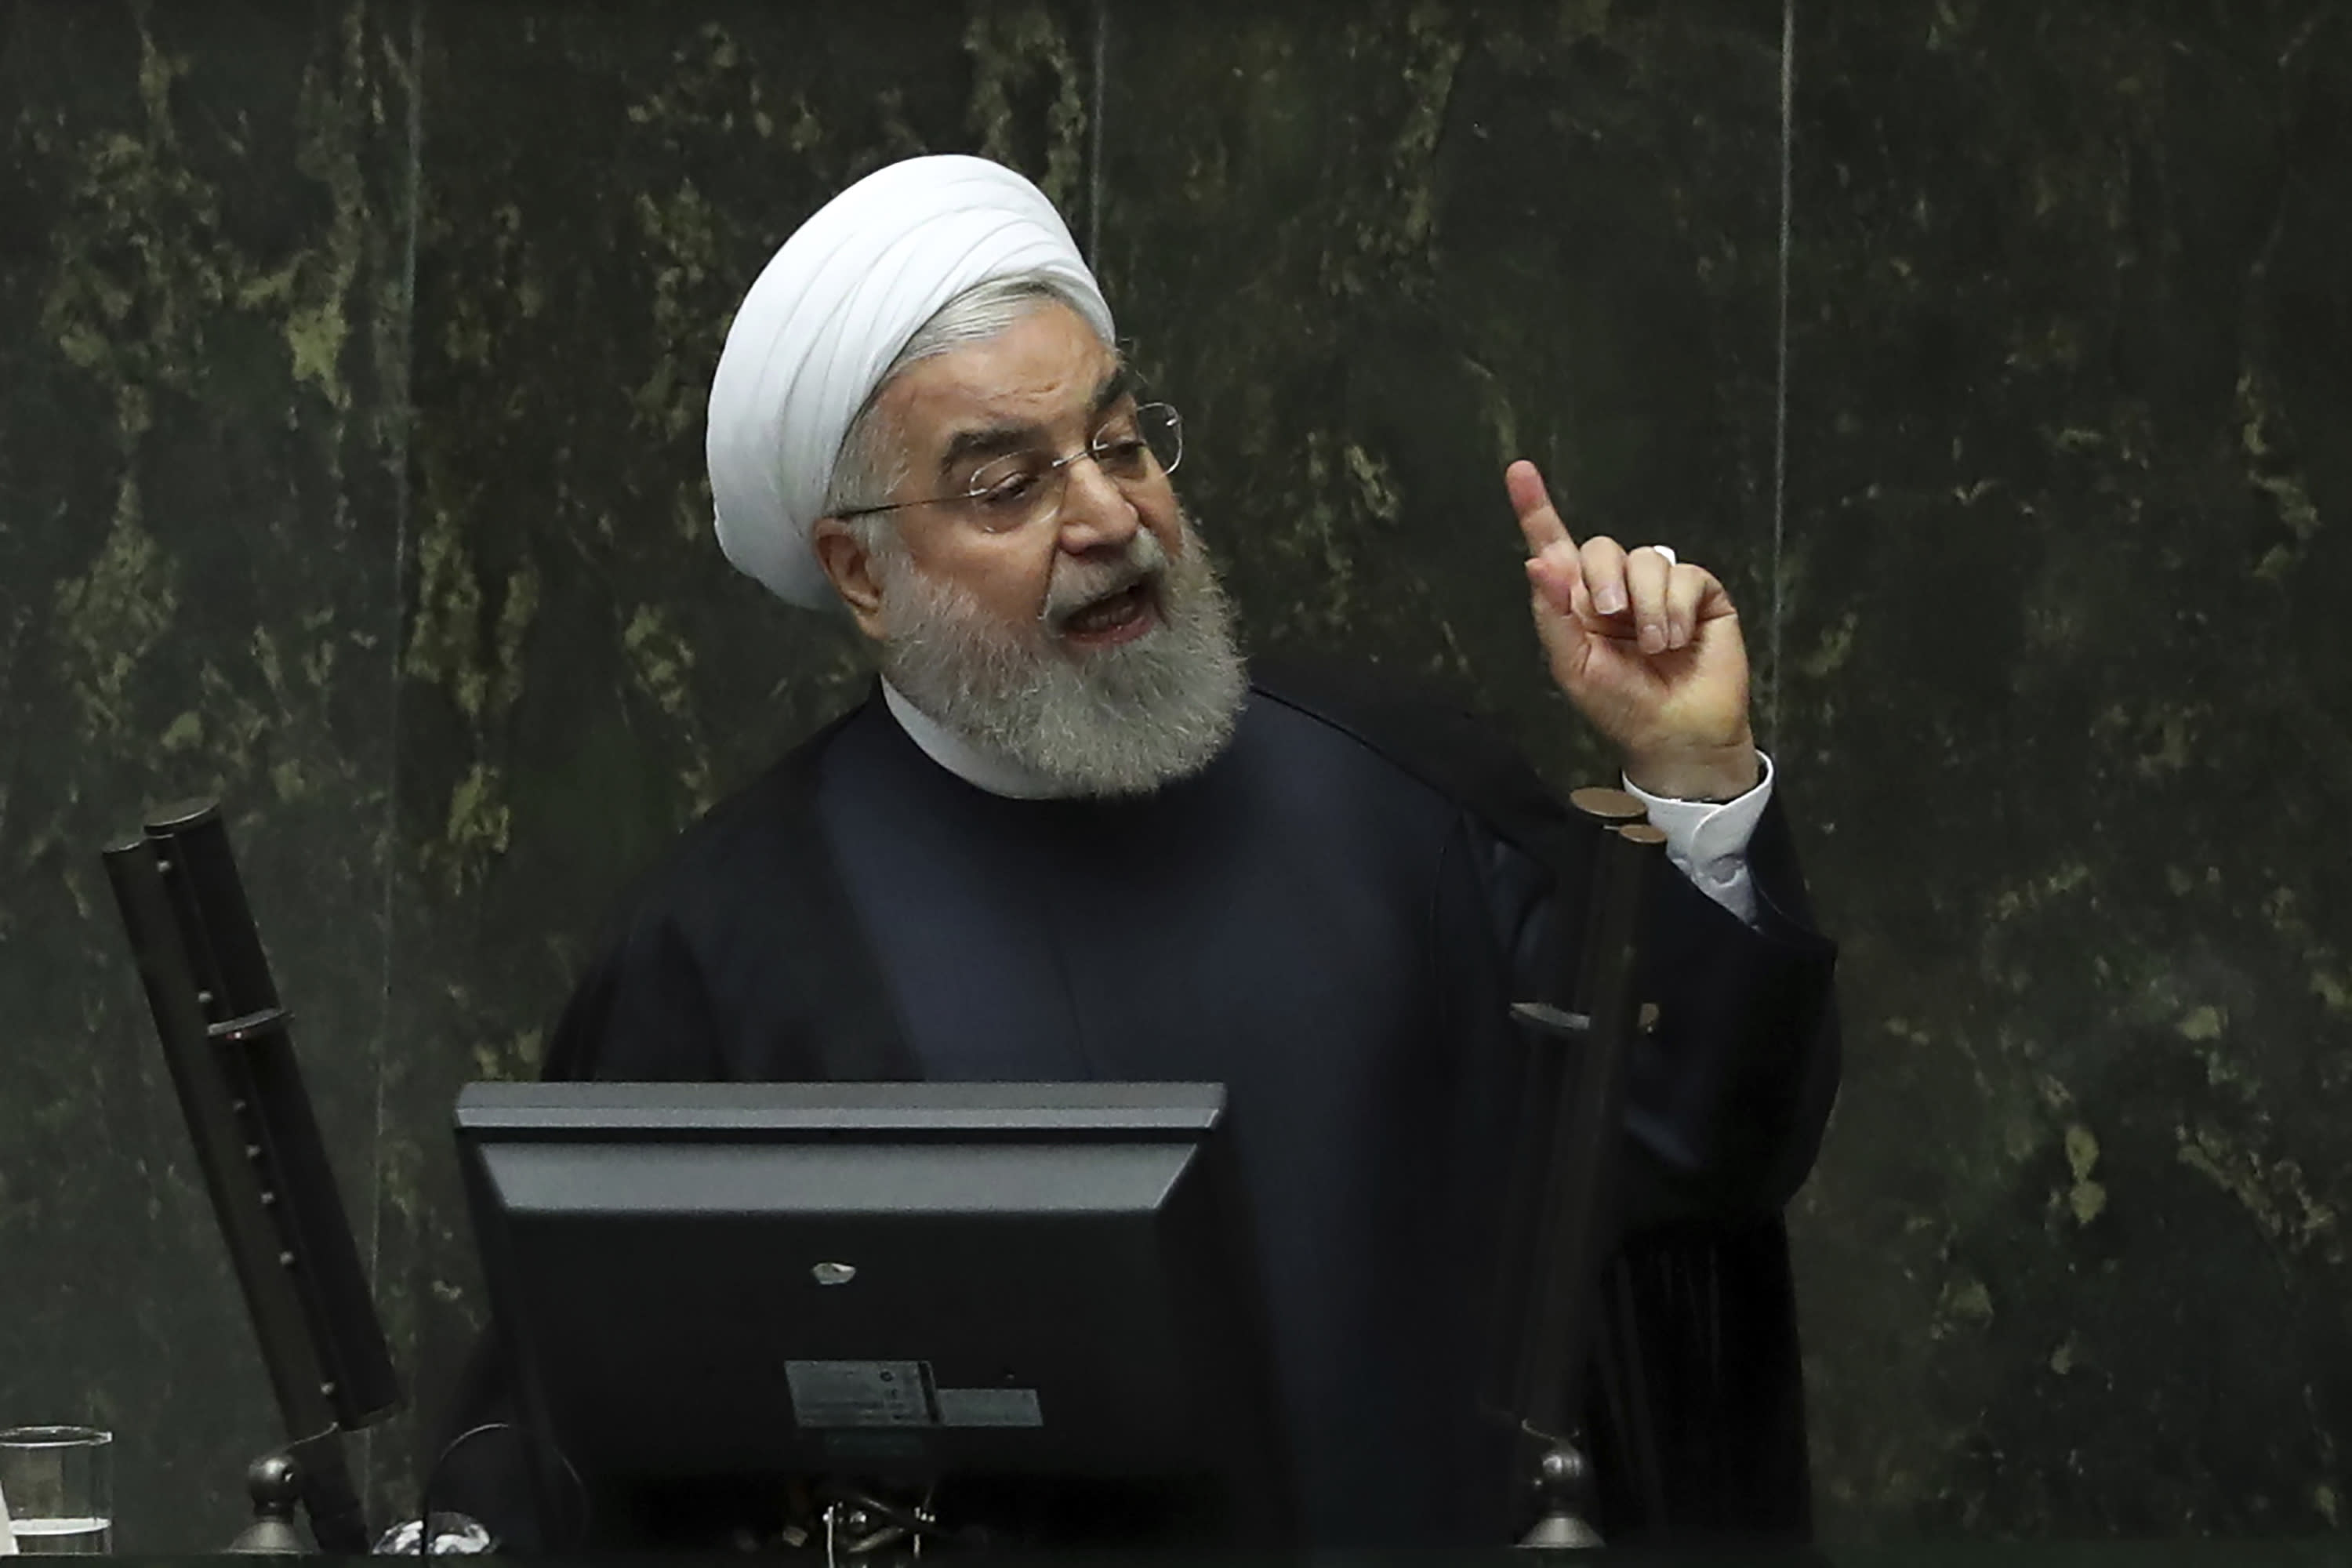 Iranian President Hassan Rouhani speaks at a session of parliament to debate his proposed tourism and education ministers, in Tehran, Iran, Tuesday, Sept. 3, 2019. Rouhani said European nations are failing to implement their commitments following the U.S. pullout from the 2015 nuclear deal with Tehran. (AP Photo/Vahid Salemi)